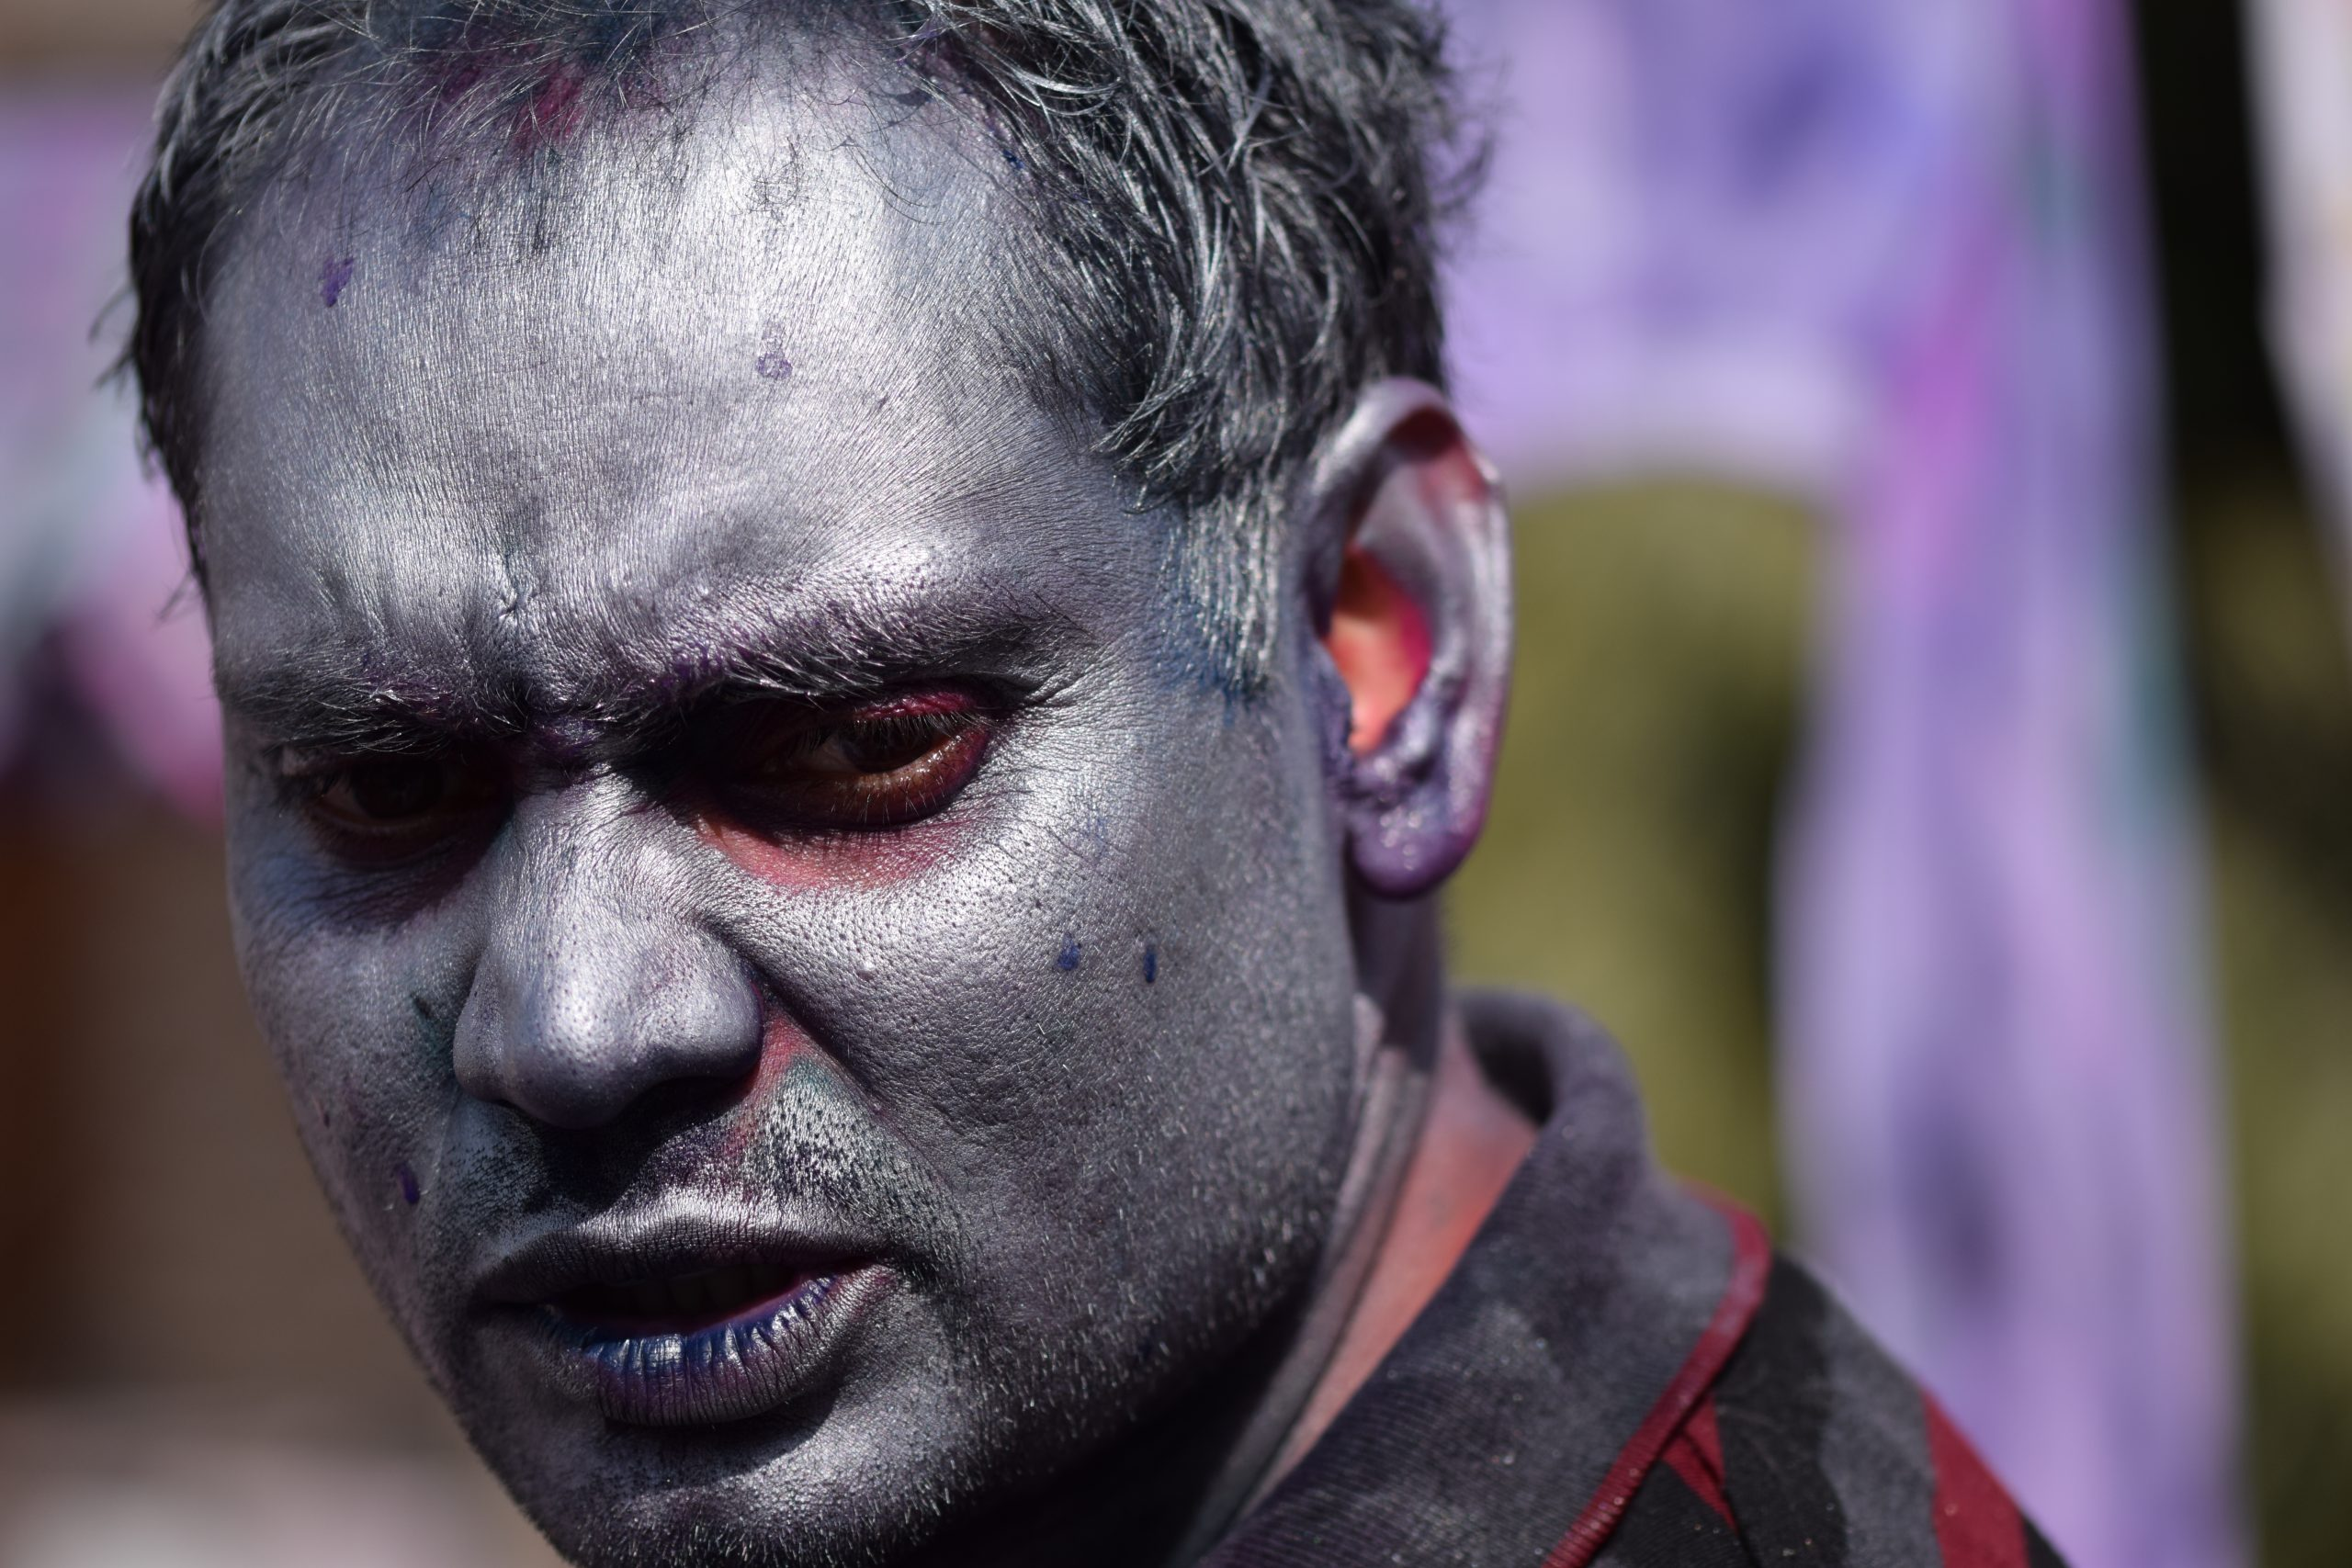 Silver color on face during Holi